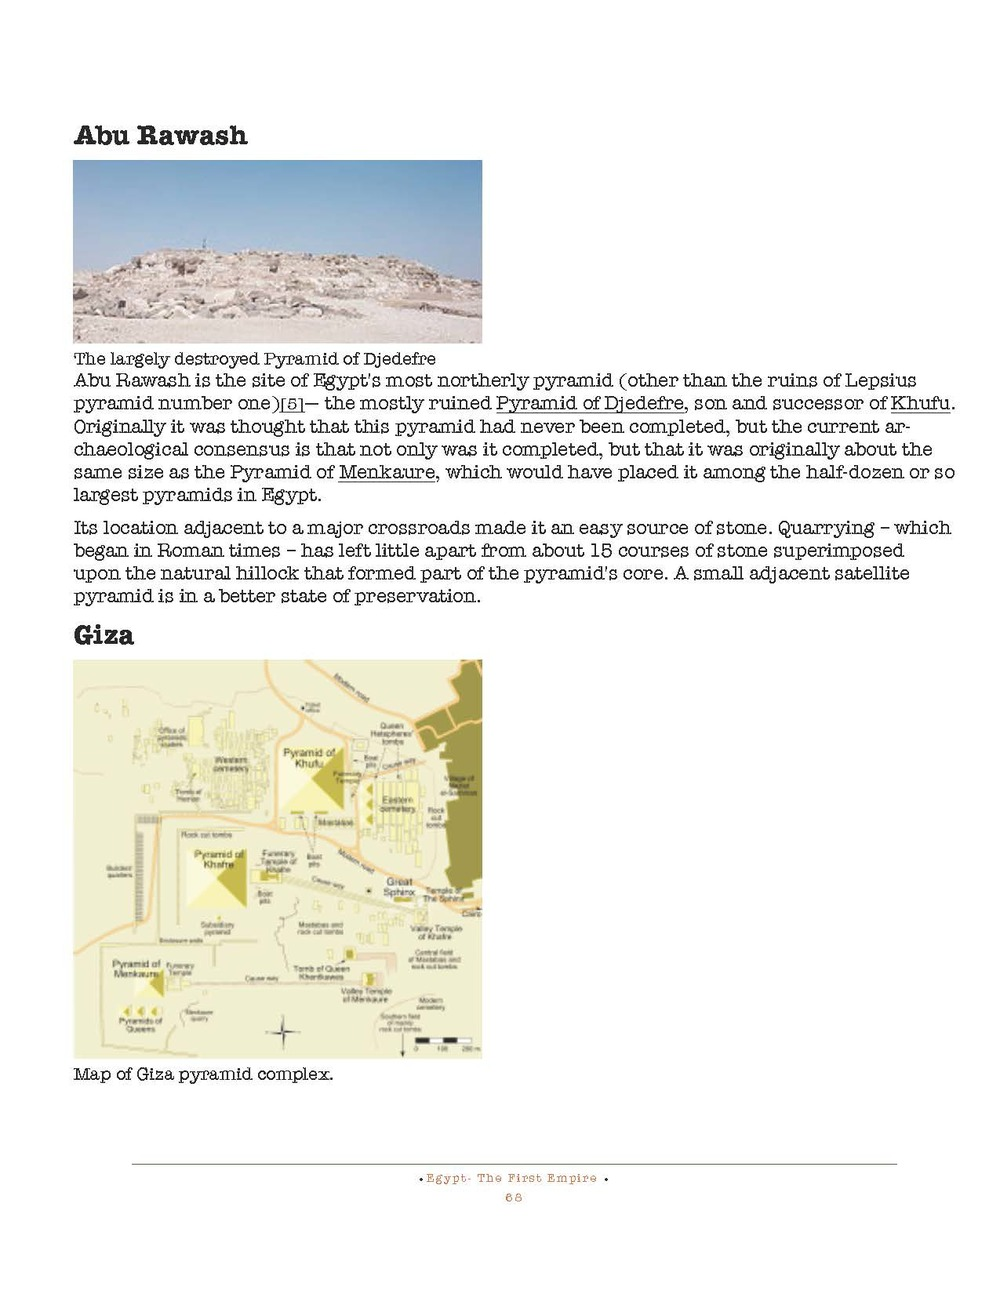 HOCE- Egypt  (First Empire) Notes_Page_068.jpg